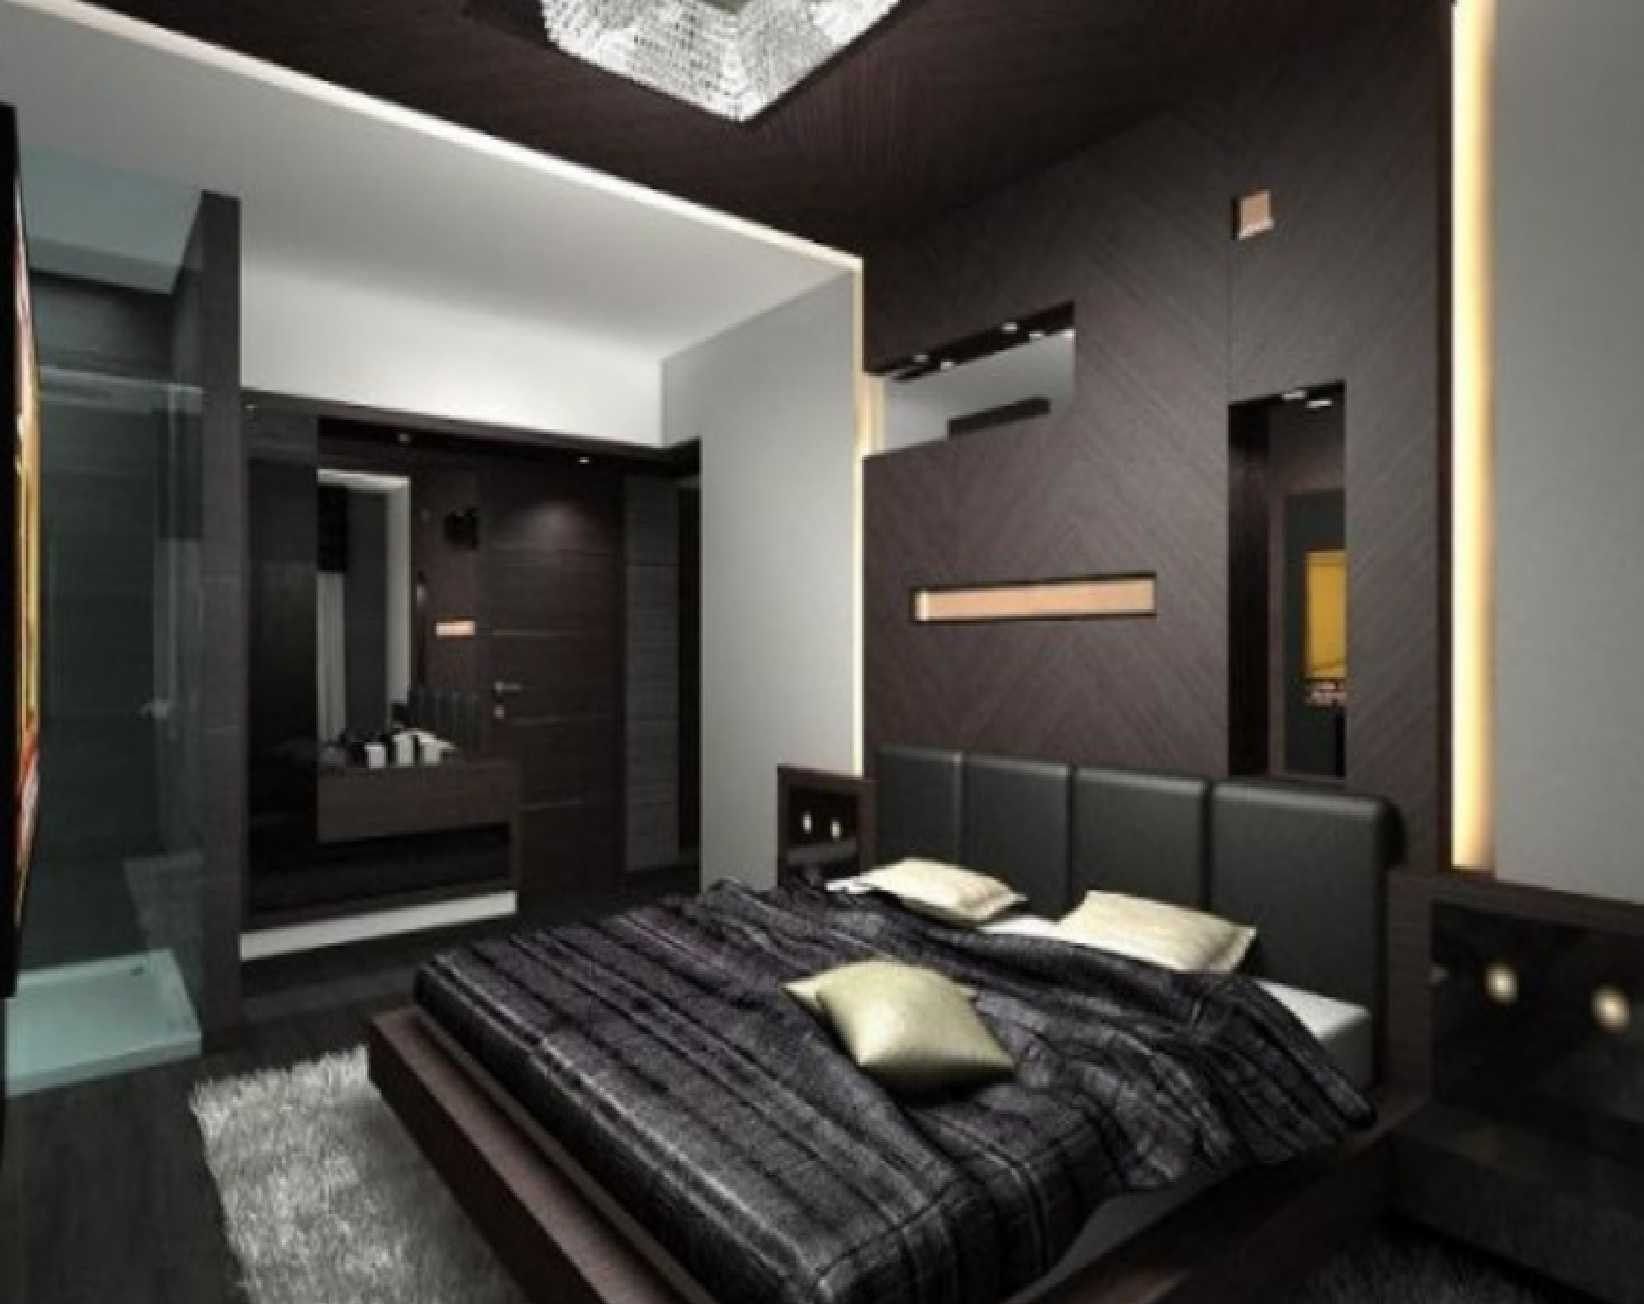 Spice up your bedroom with some beautiful styles and designs ...